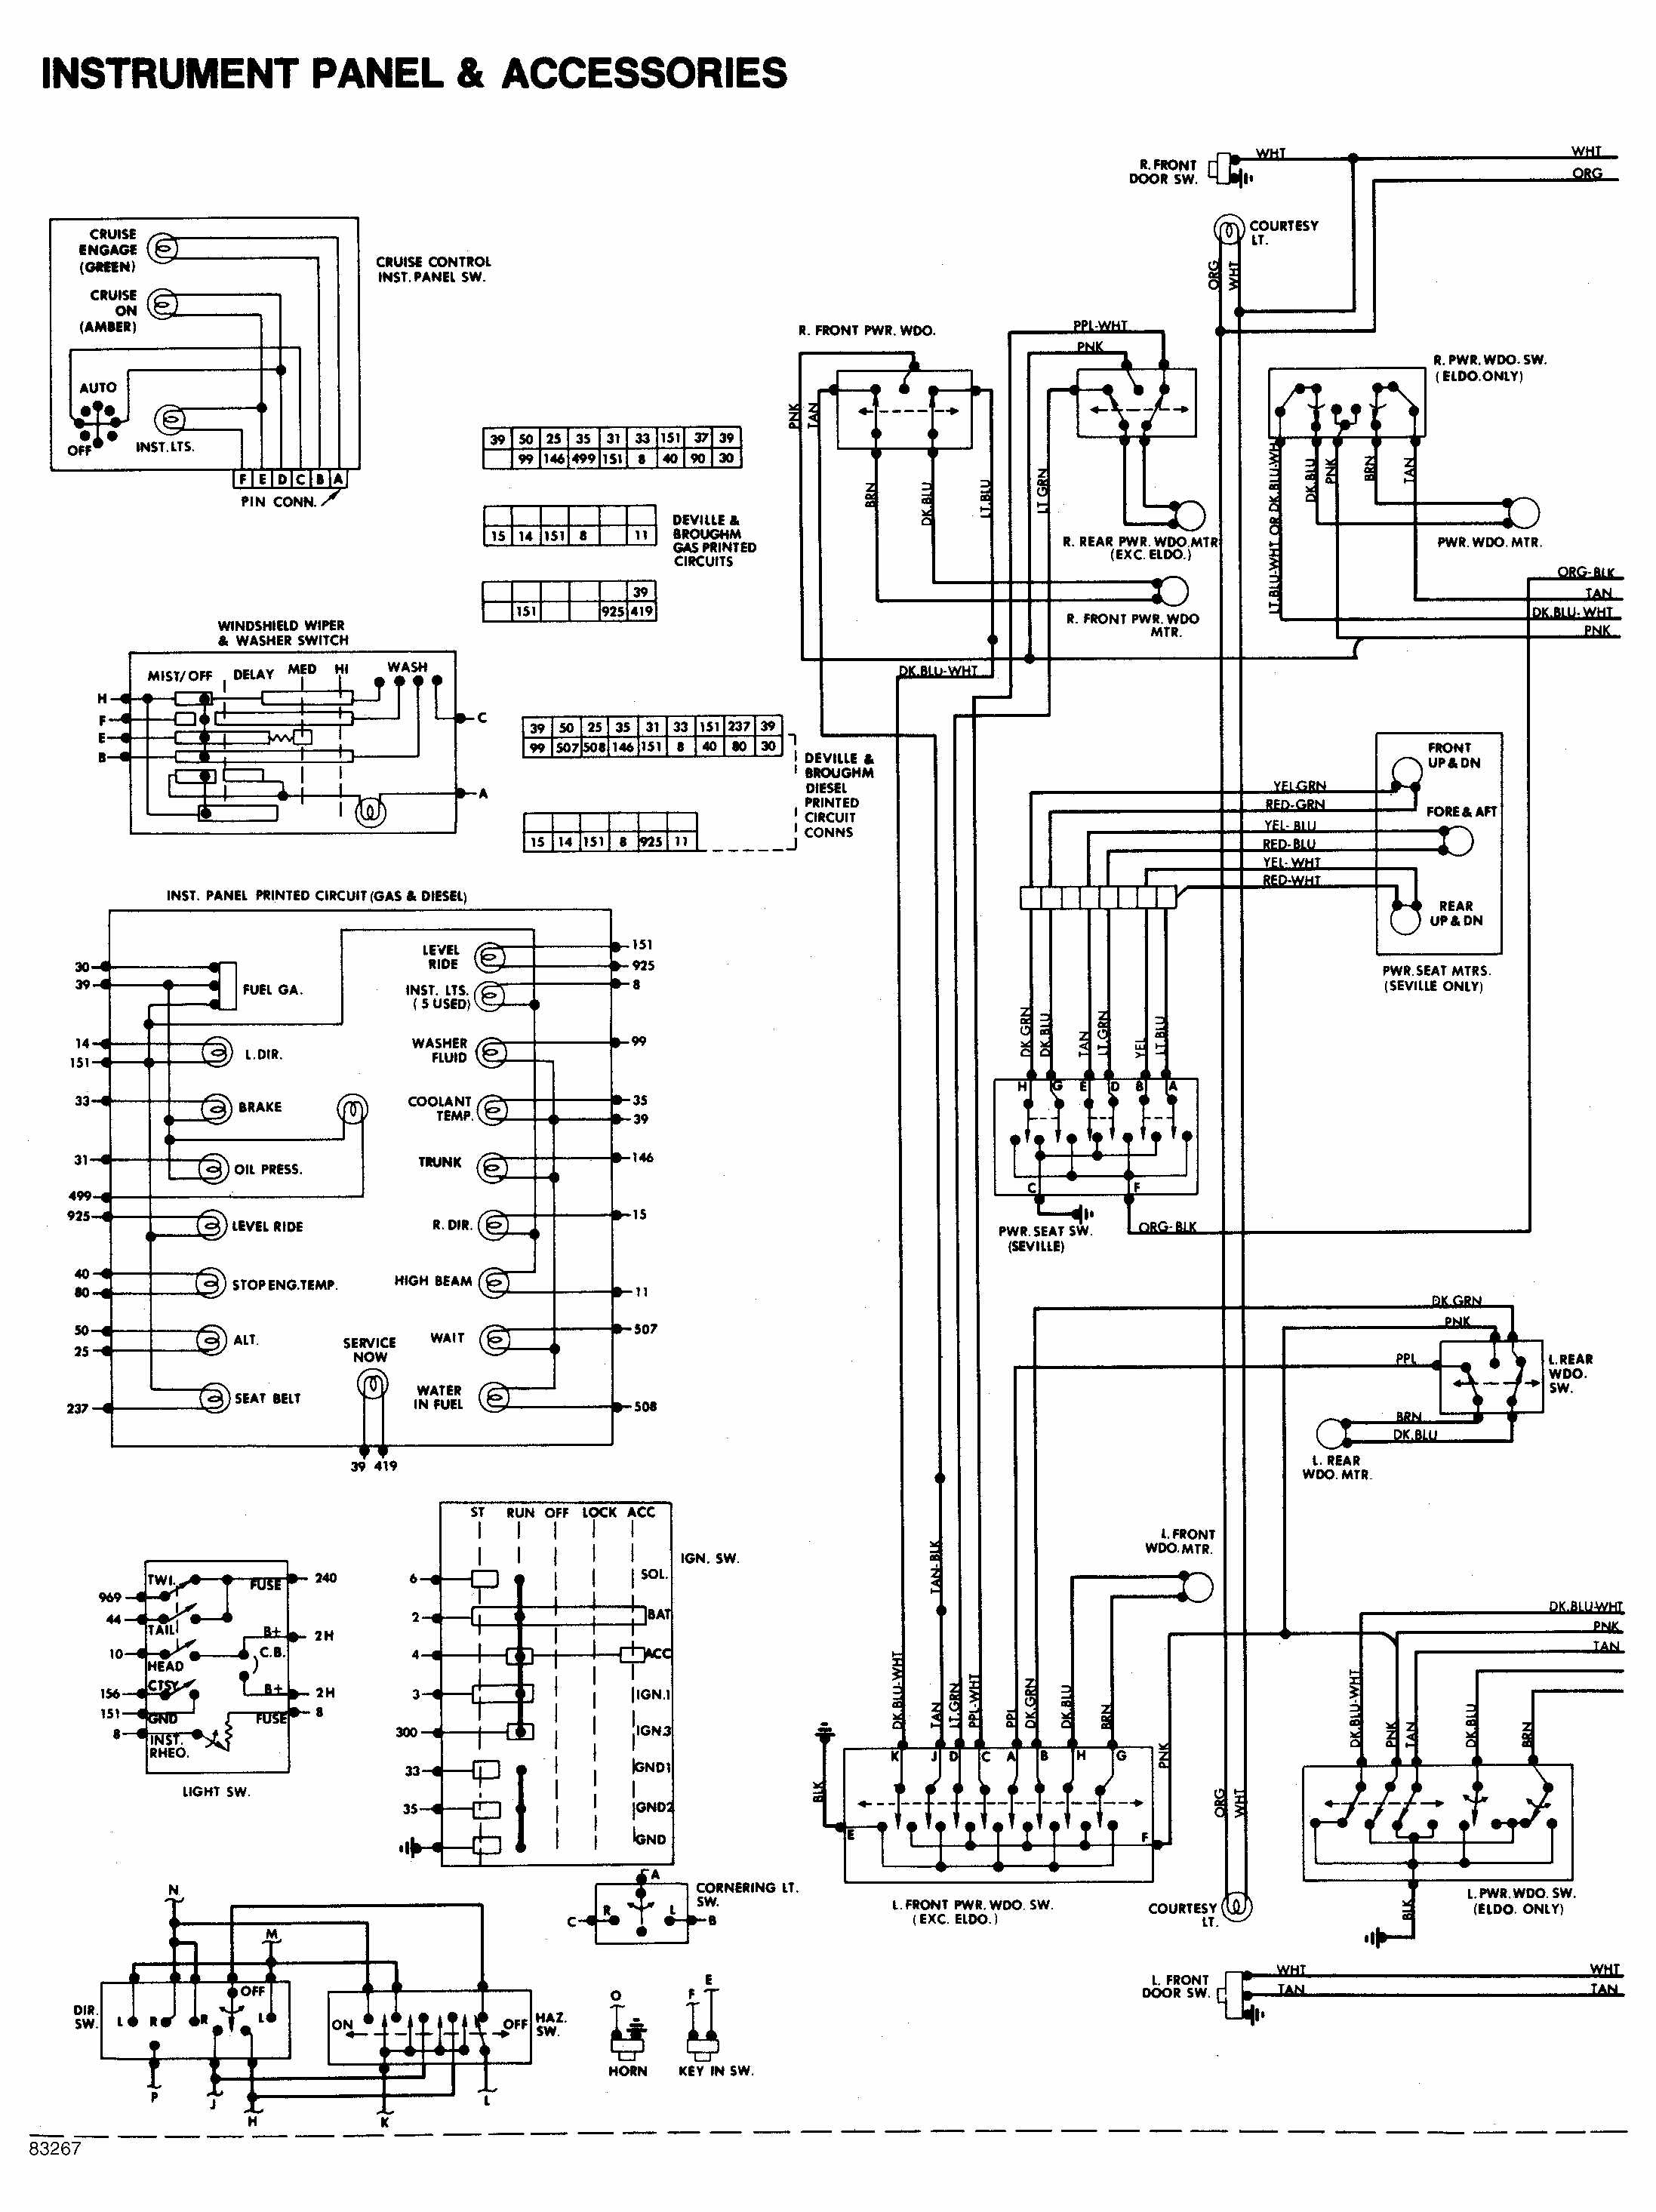 Cadillac Power Antenna Wiring Free Download Diagram Schematic Toyota Mr2 Spyder Harness Diagrams 2005 Sts Just Another